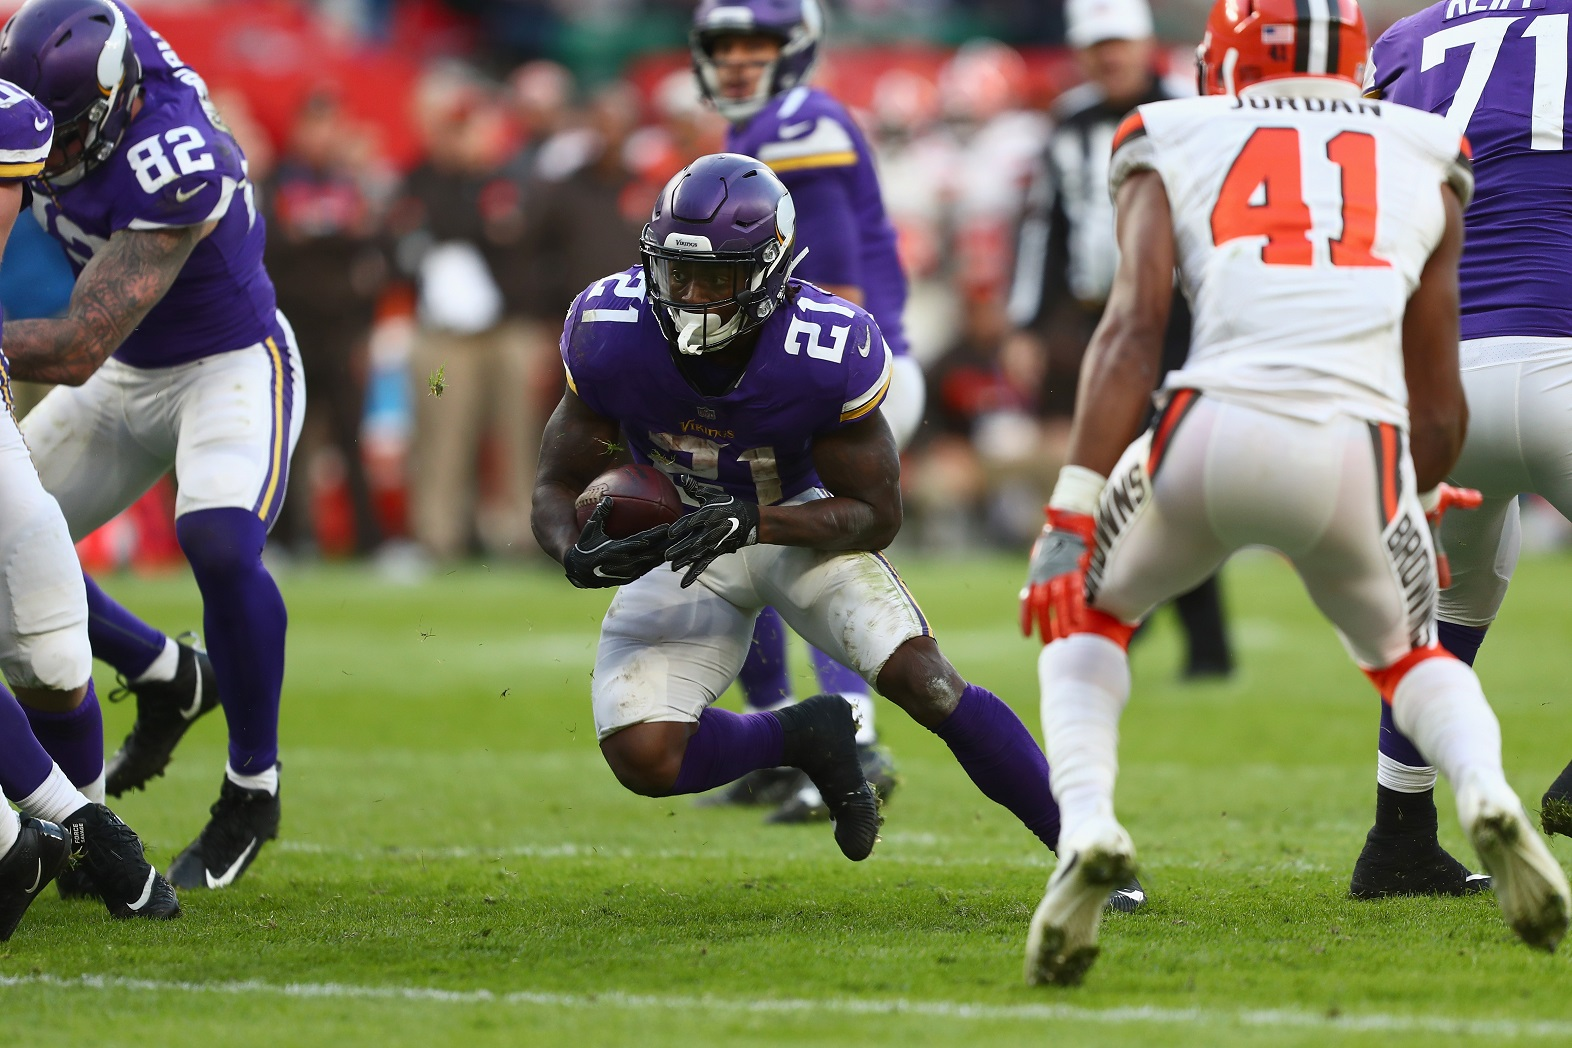 49ers expected to sign RB Jerick McKinnon to four-year deal